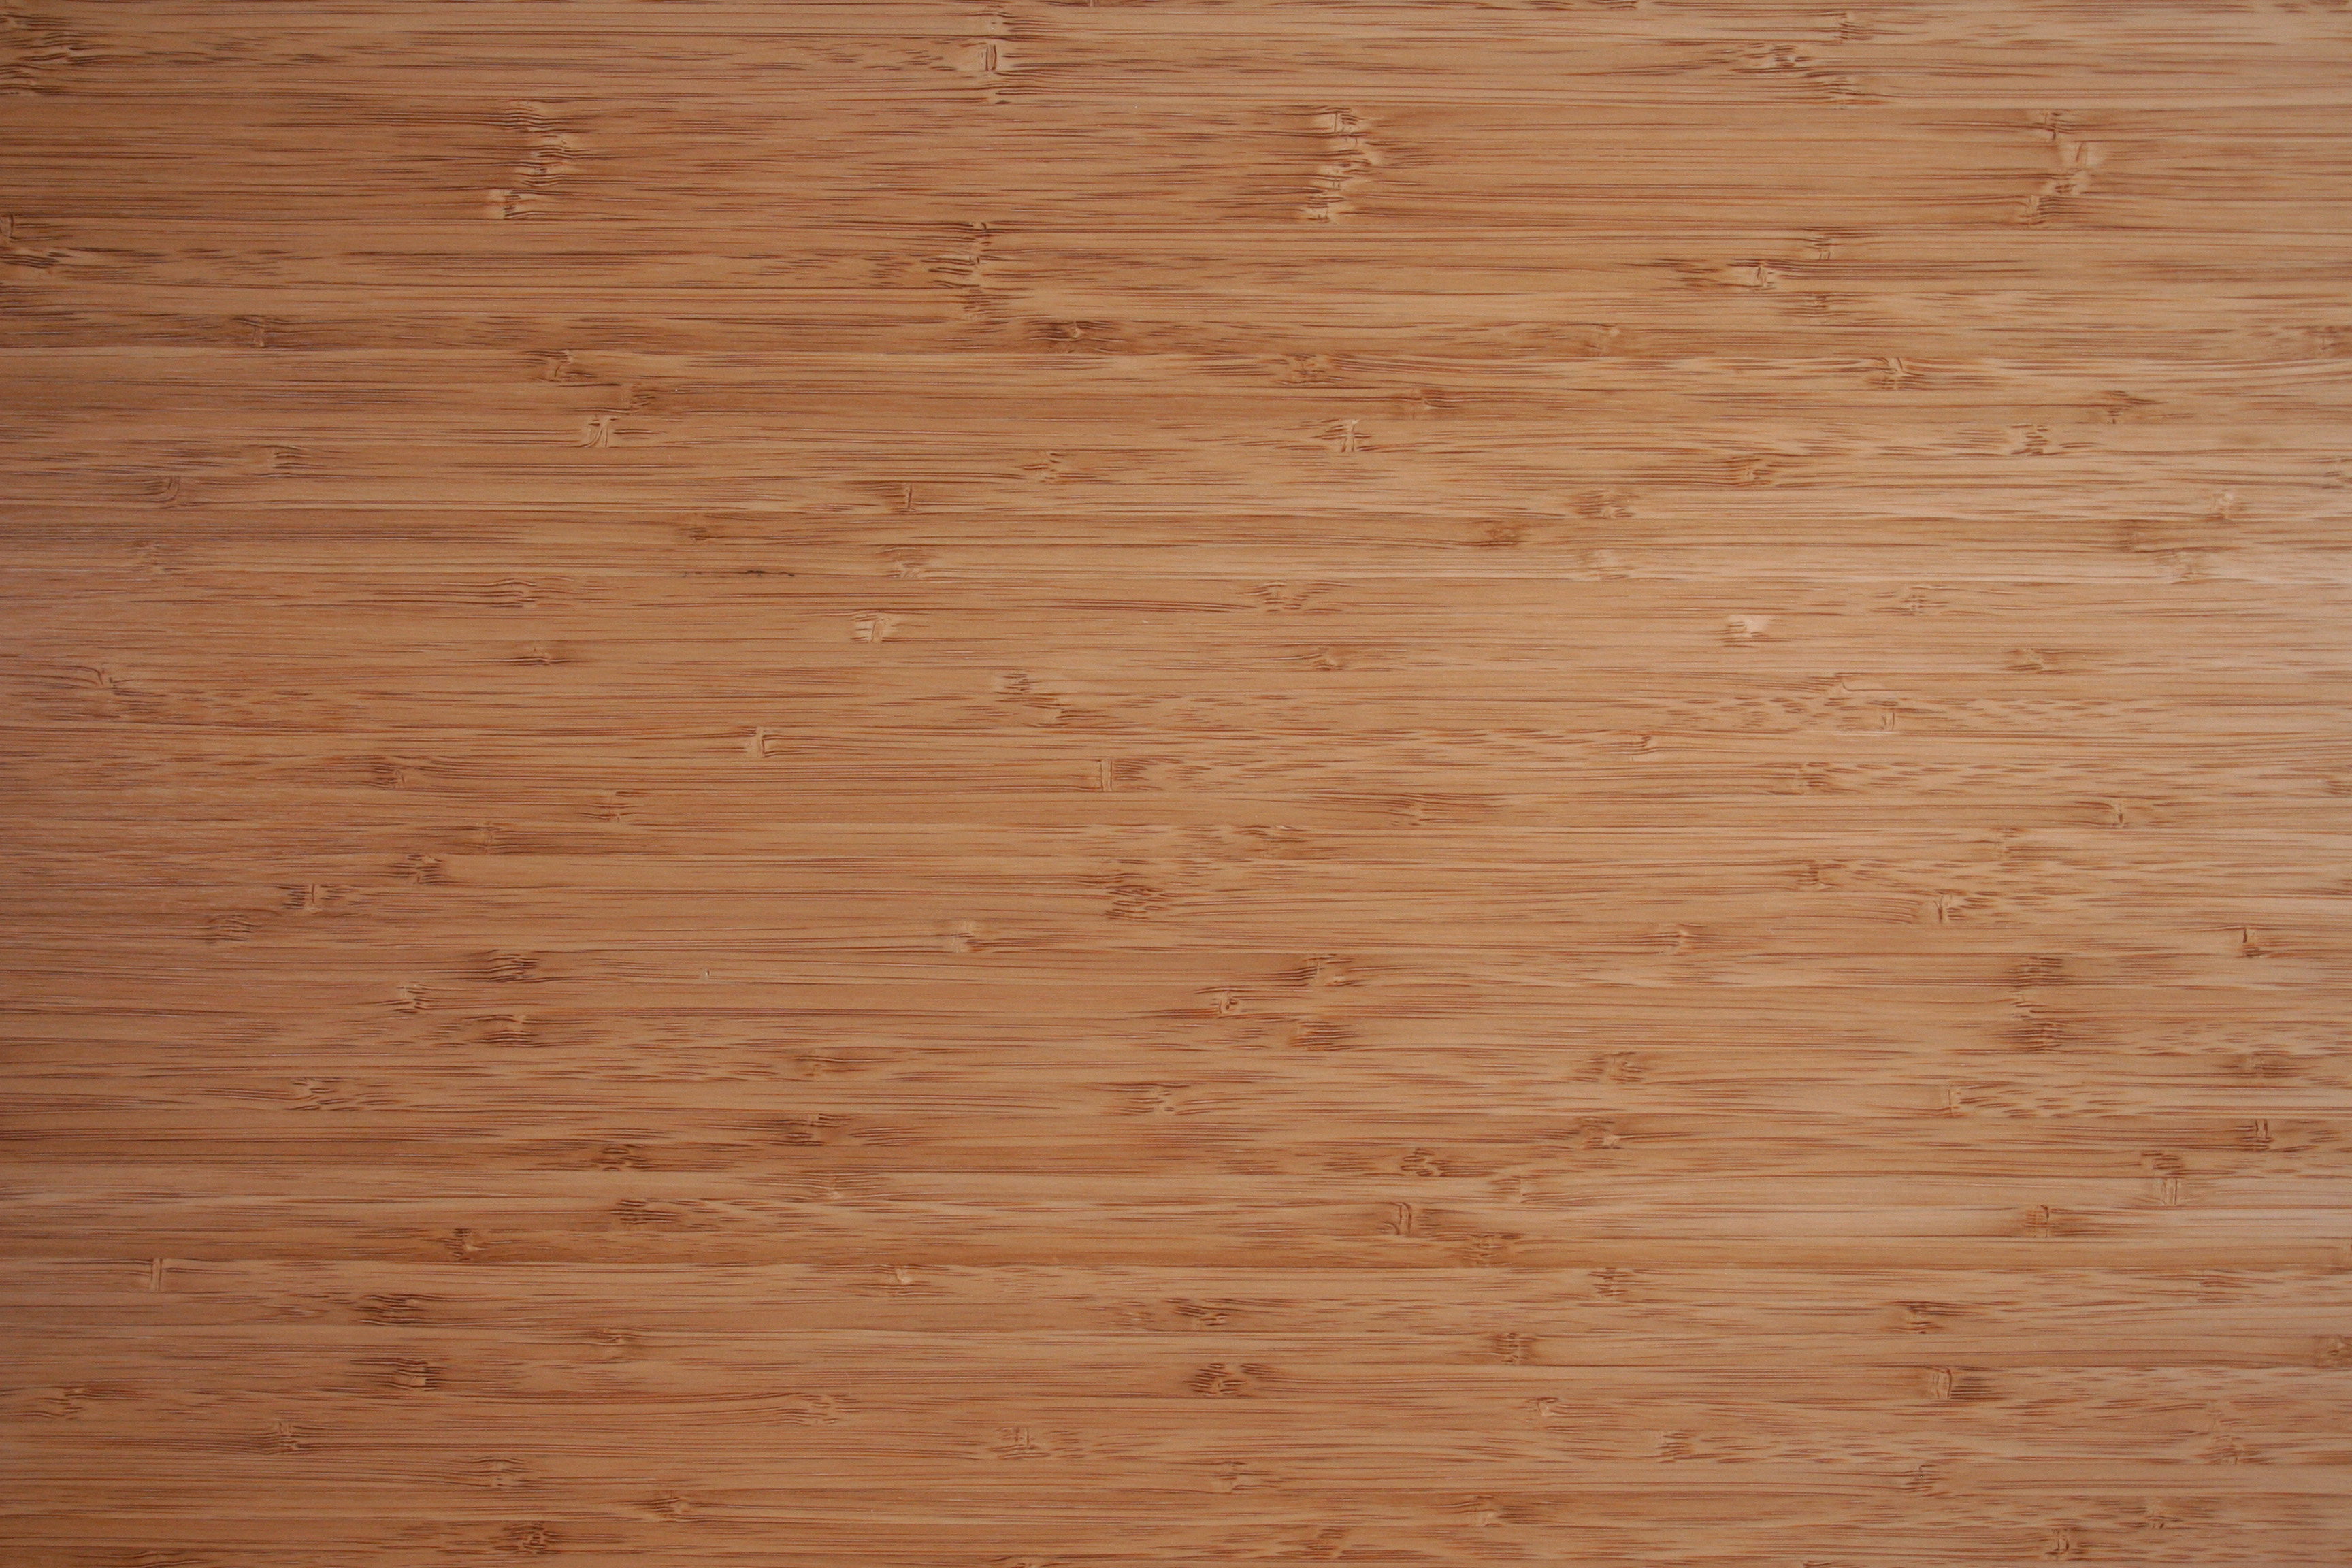 Bamboo Texture Wood Floor Natural Wood Pattern Texture Alex